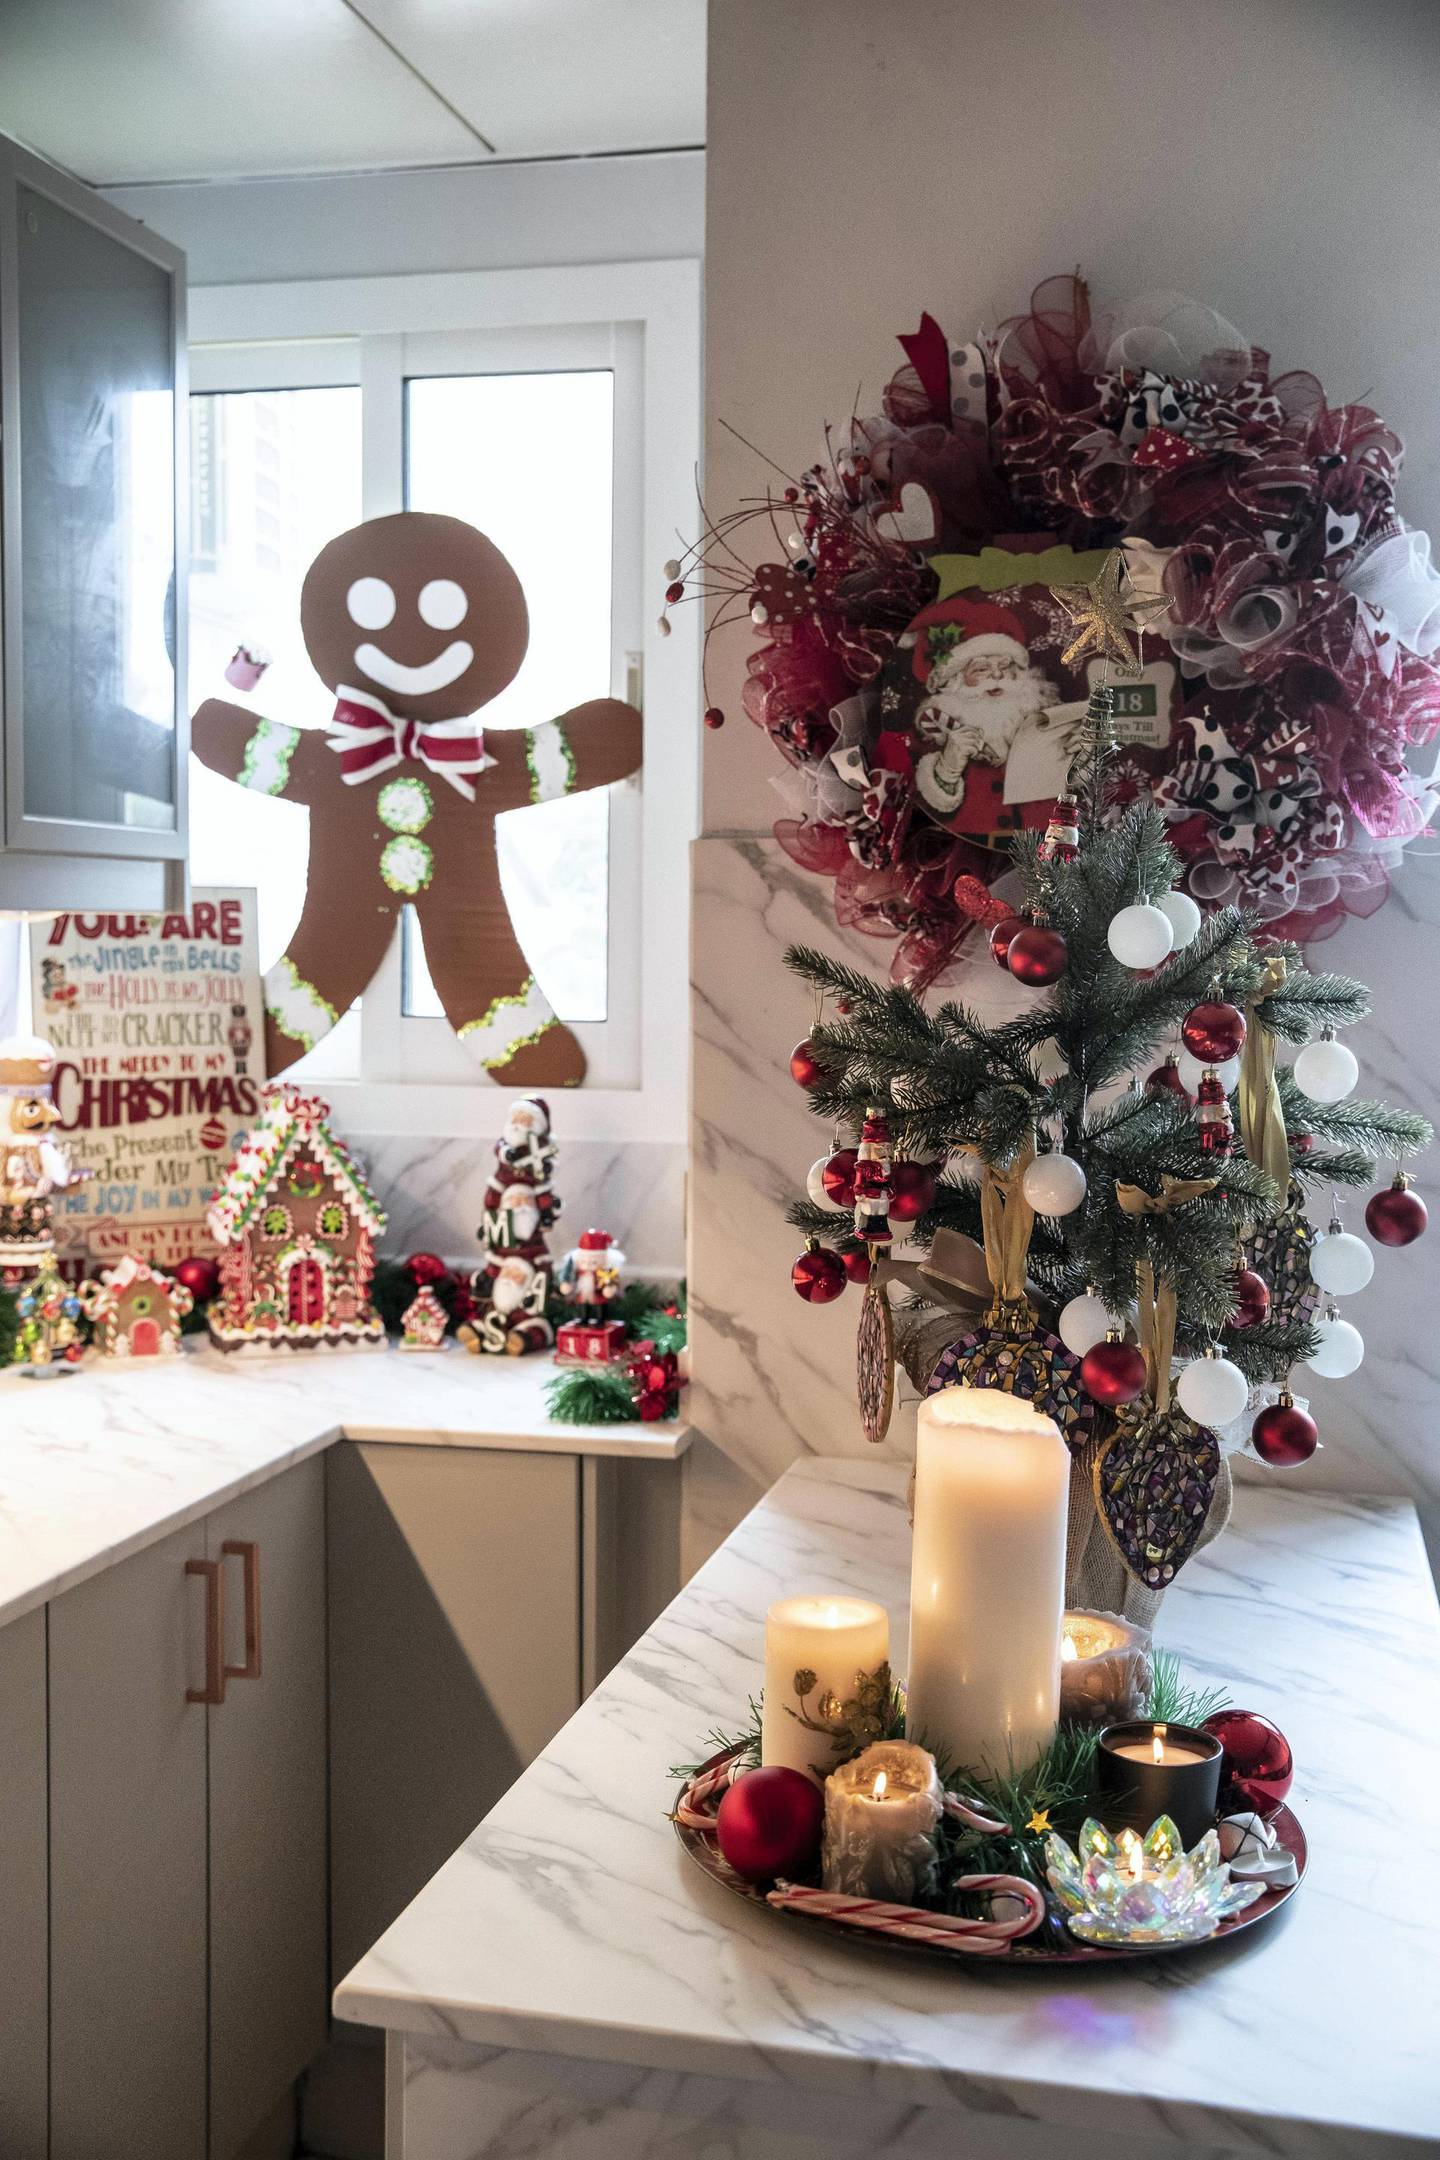 DUBAI UNITED ARAB EMIRATES. 07 DECEMBER 2020. Festive decorations by UAE residents, the home of  Cherry Watson and her husband. (Photo: Antonie Robertson/The National) Journalist: Janice Rodrigues. Section: National.